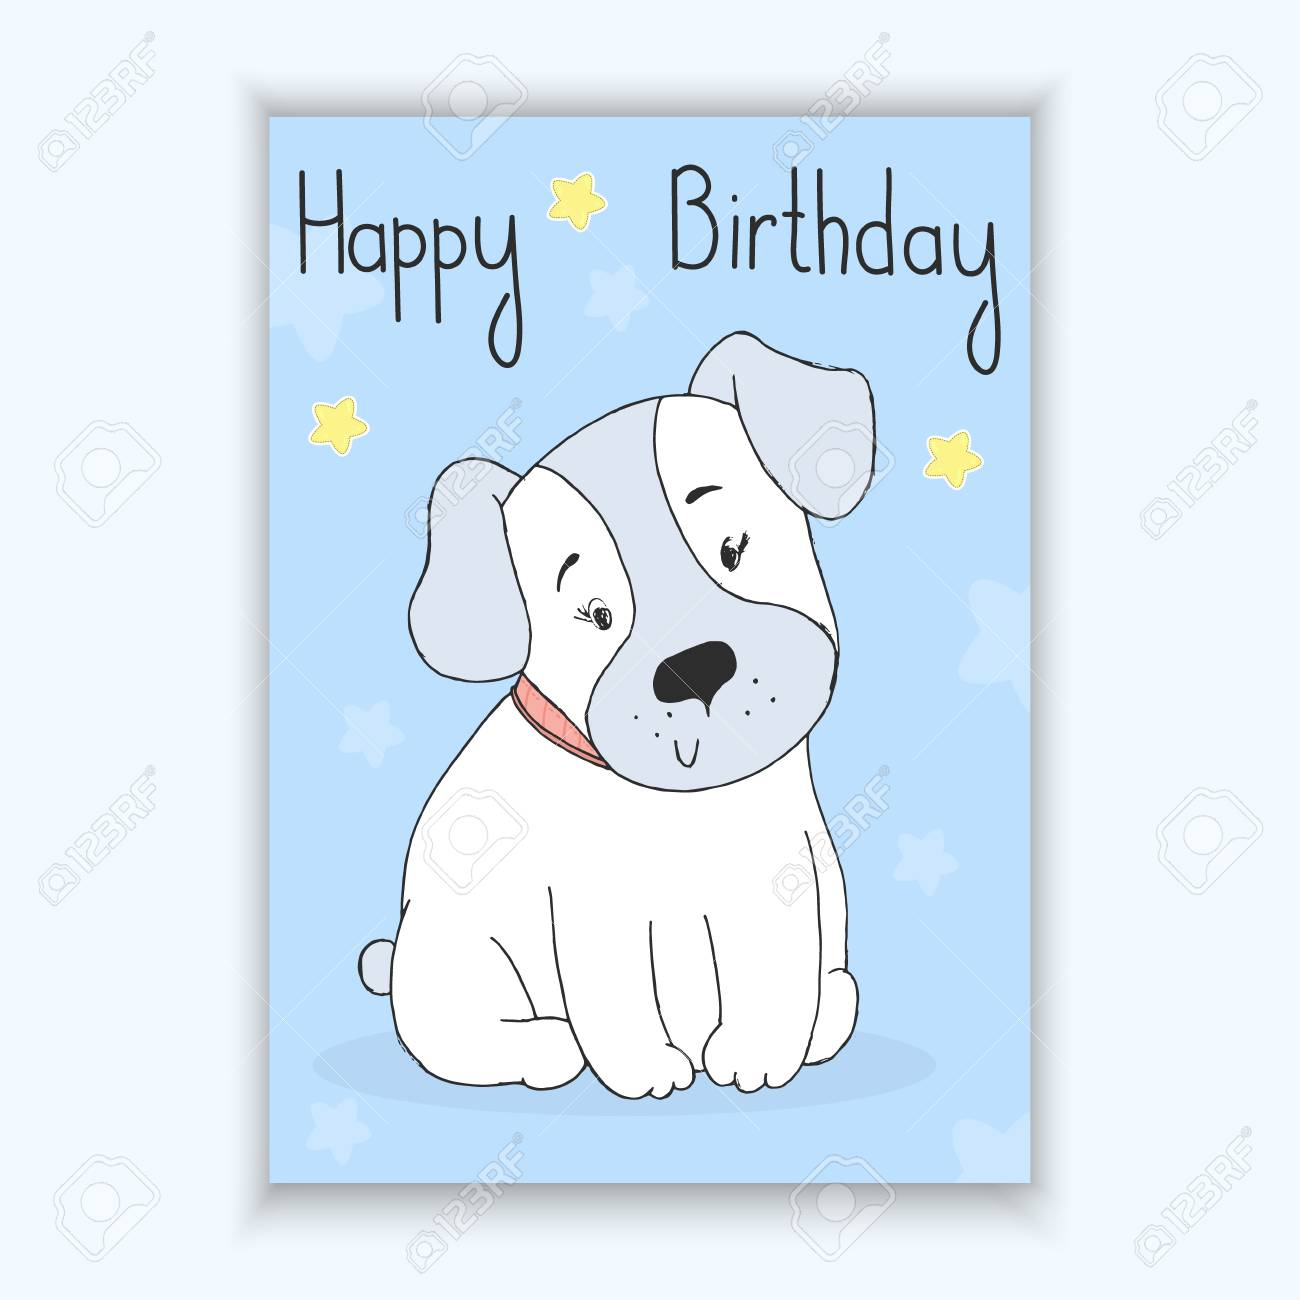 Happy Birthday Card With Hand Drawn Cute Cartoon Dog Vector Royalty Free Cliparts Vectors And Stock Illustration Image 73372786